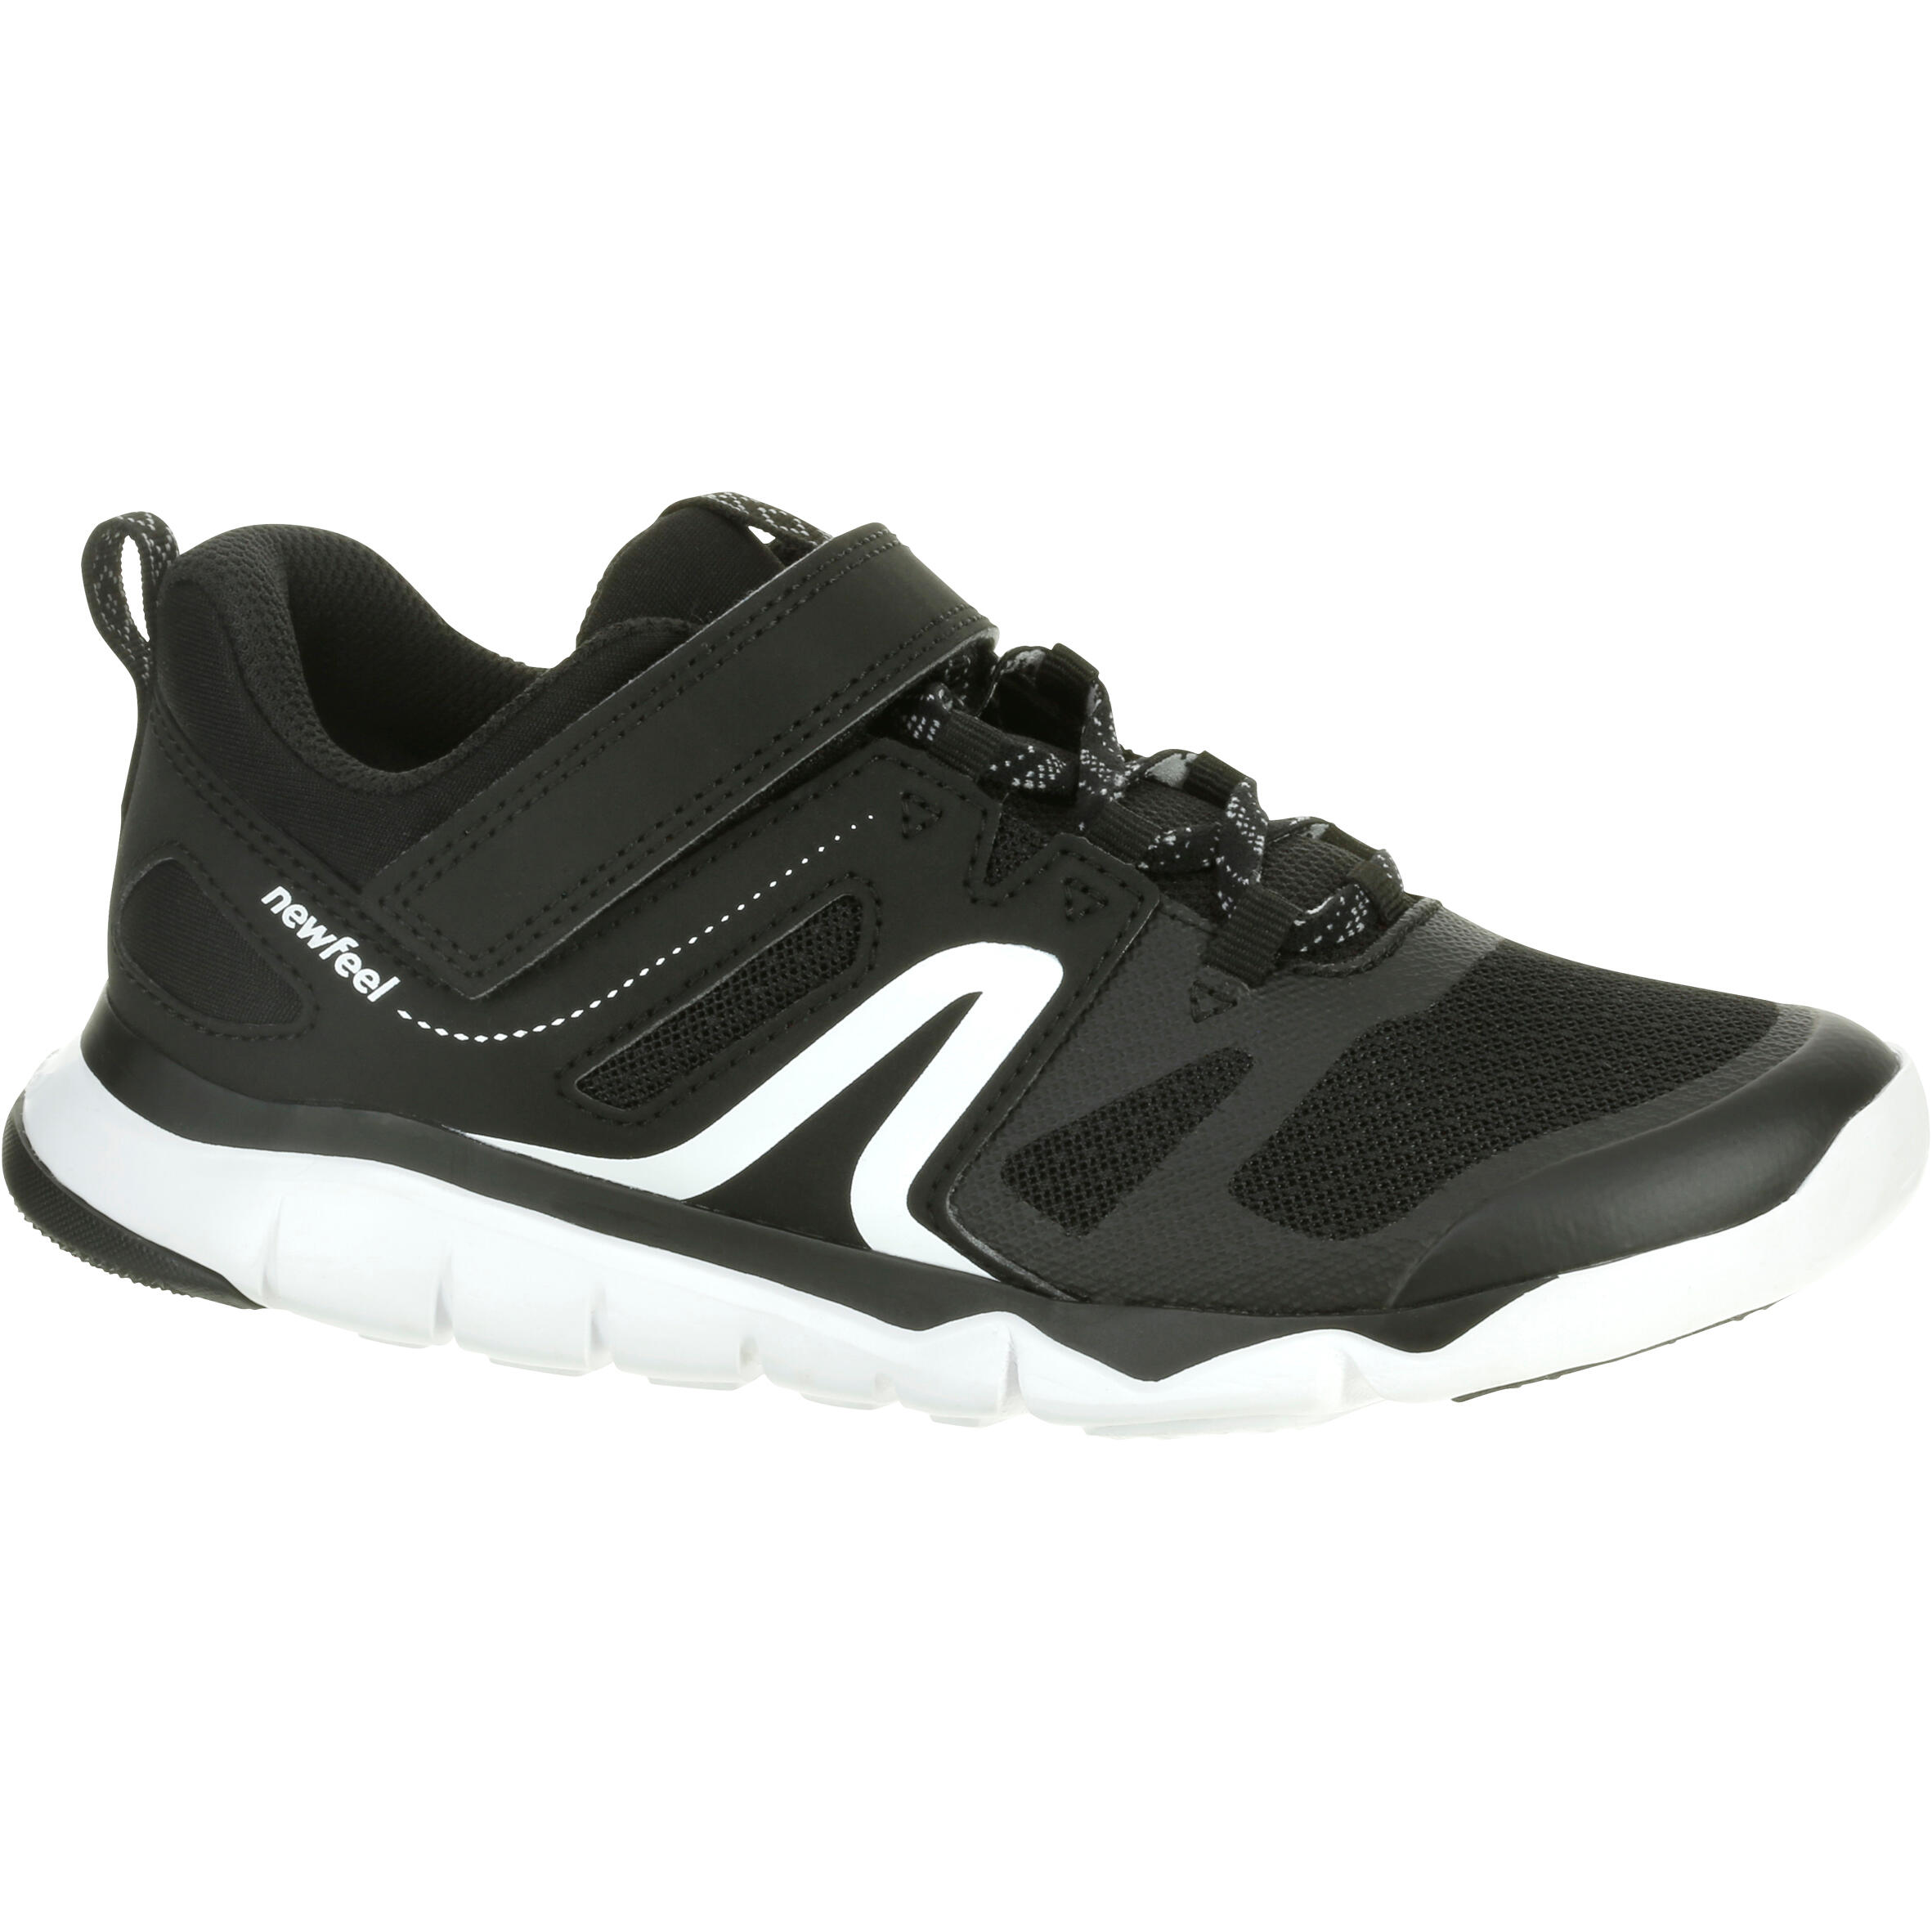 Walking shoes for kids PW 540 - black/white